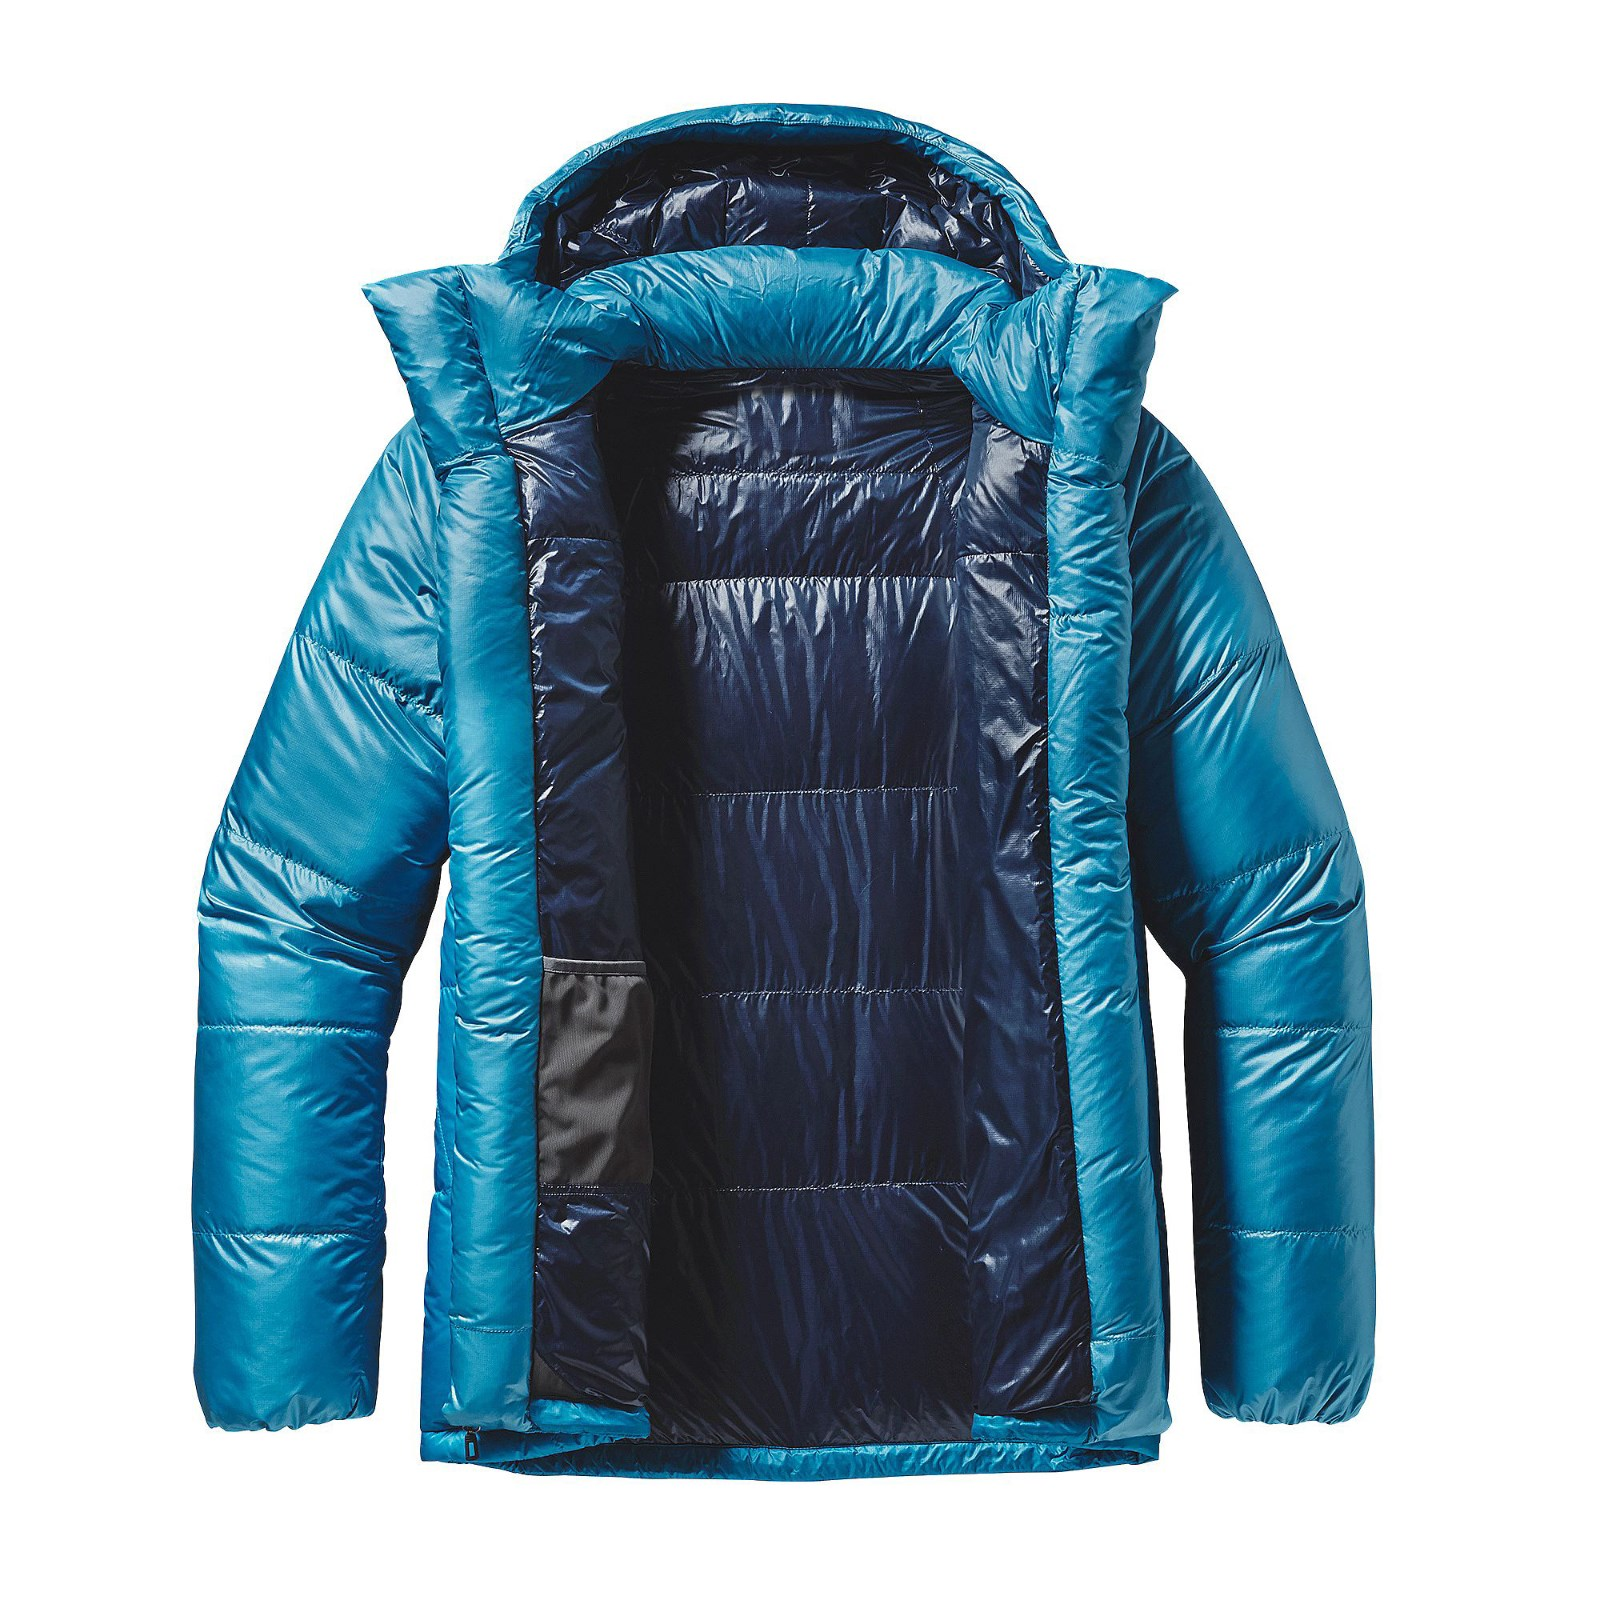 Men's Fit Down Parka Manufacturers, Men's Fit Down Parka Factory, Supply Men's Fit Down Parka